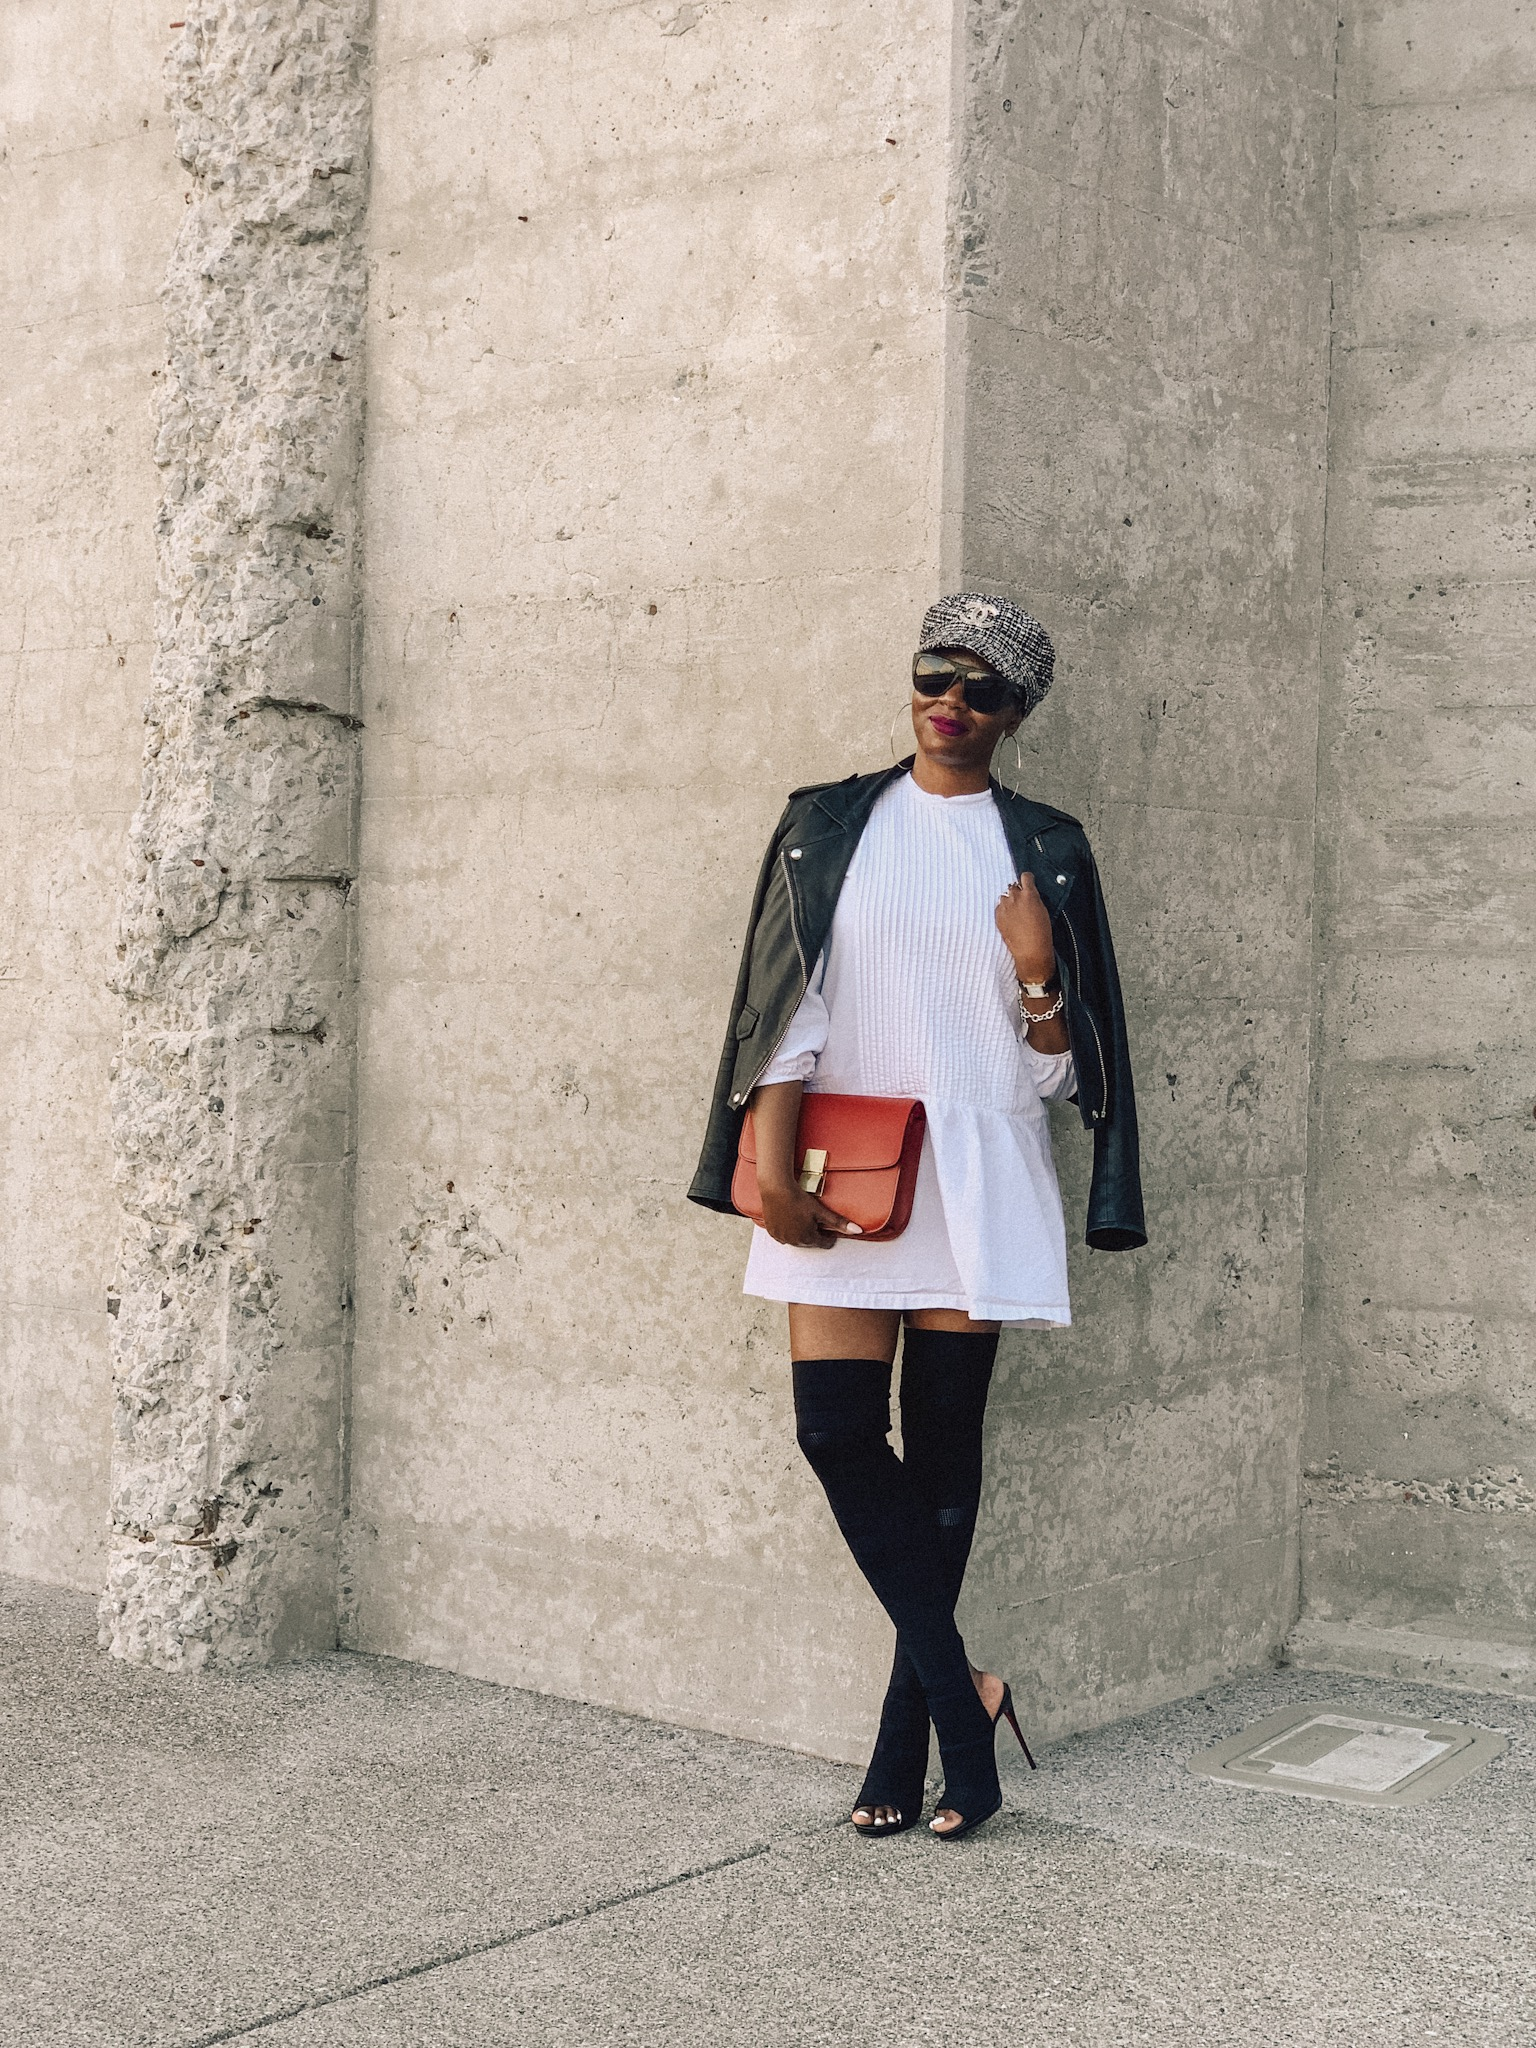 San Francisco Style Blogger Amber Richele Of The Cocoa Butter Diaries Shares Her Struggle With Receiving Compliments